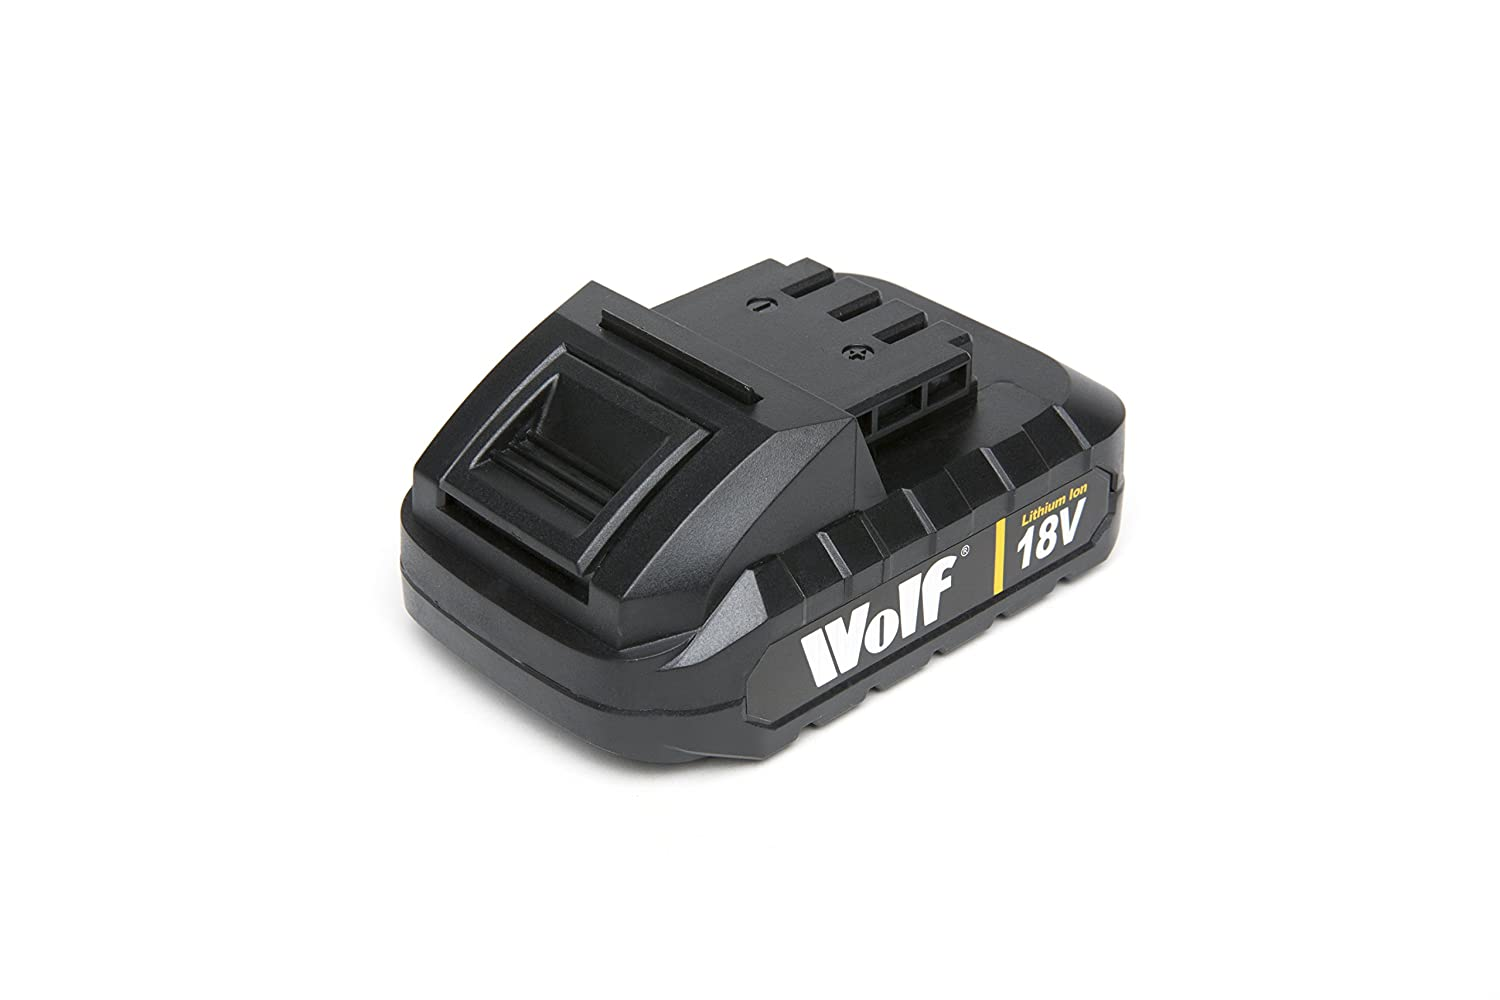 1500mah Battery Li-ion for use with Wolf 18v Combi Drill Kit